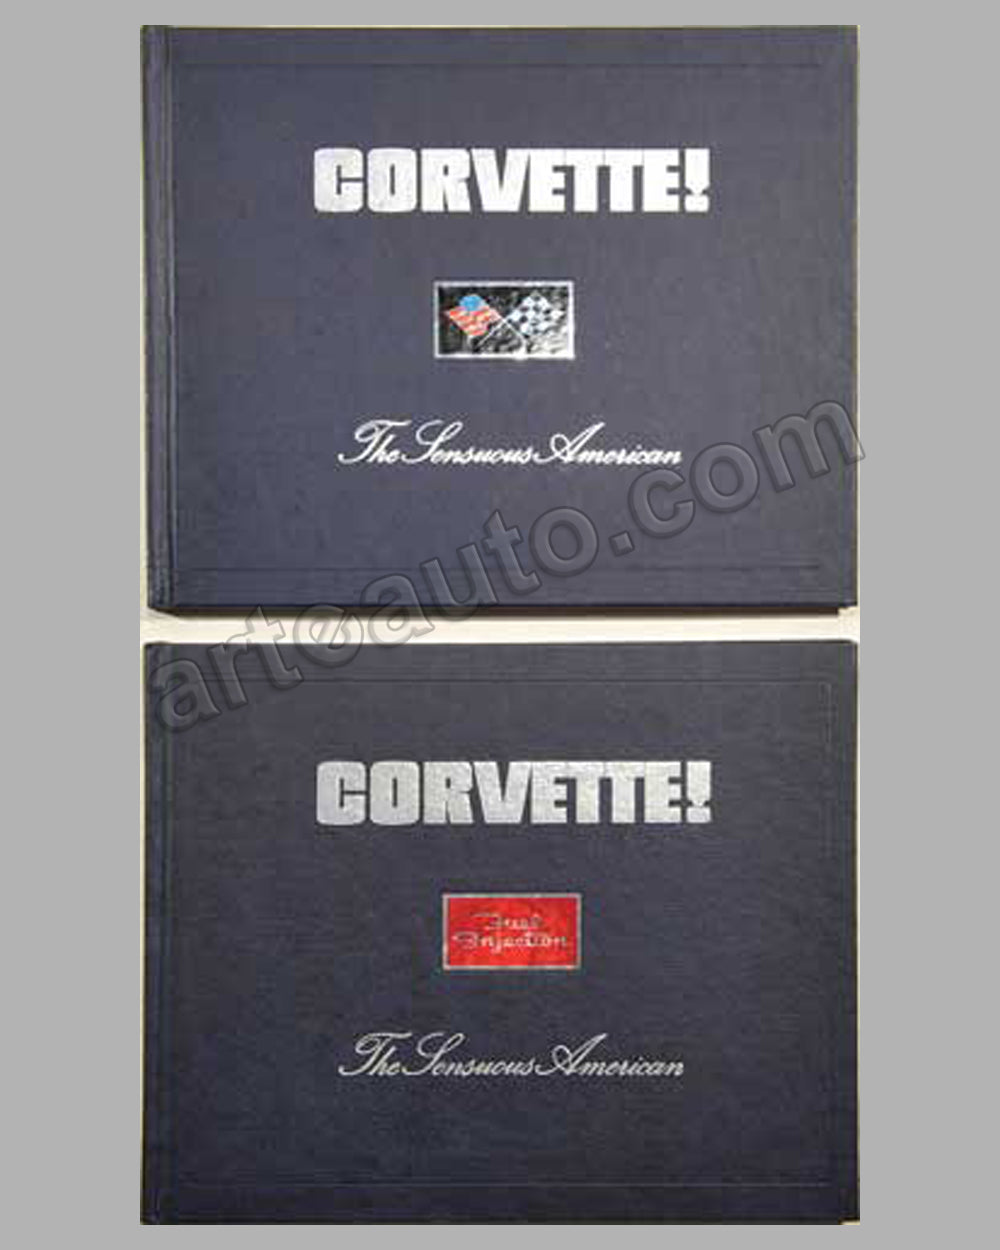 Two volumes Corvette - The Sensuous American by M. Antonick